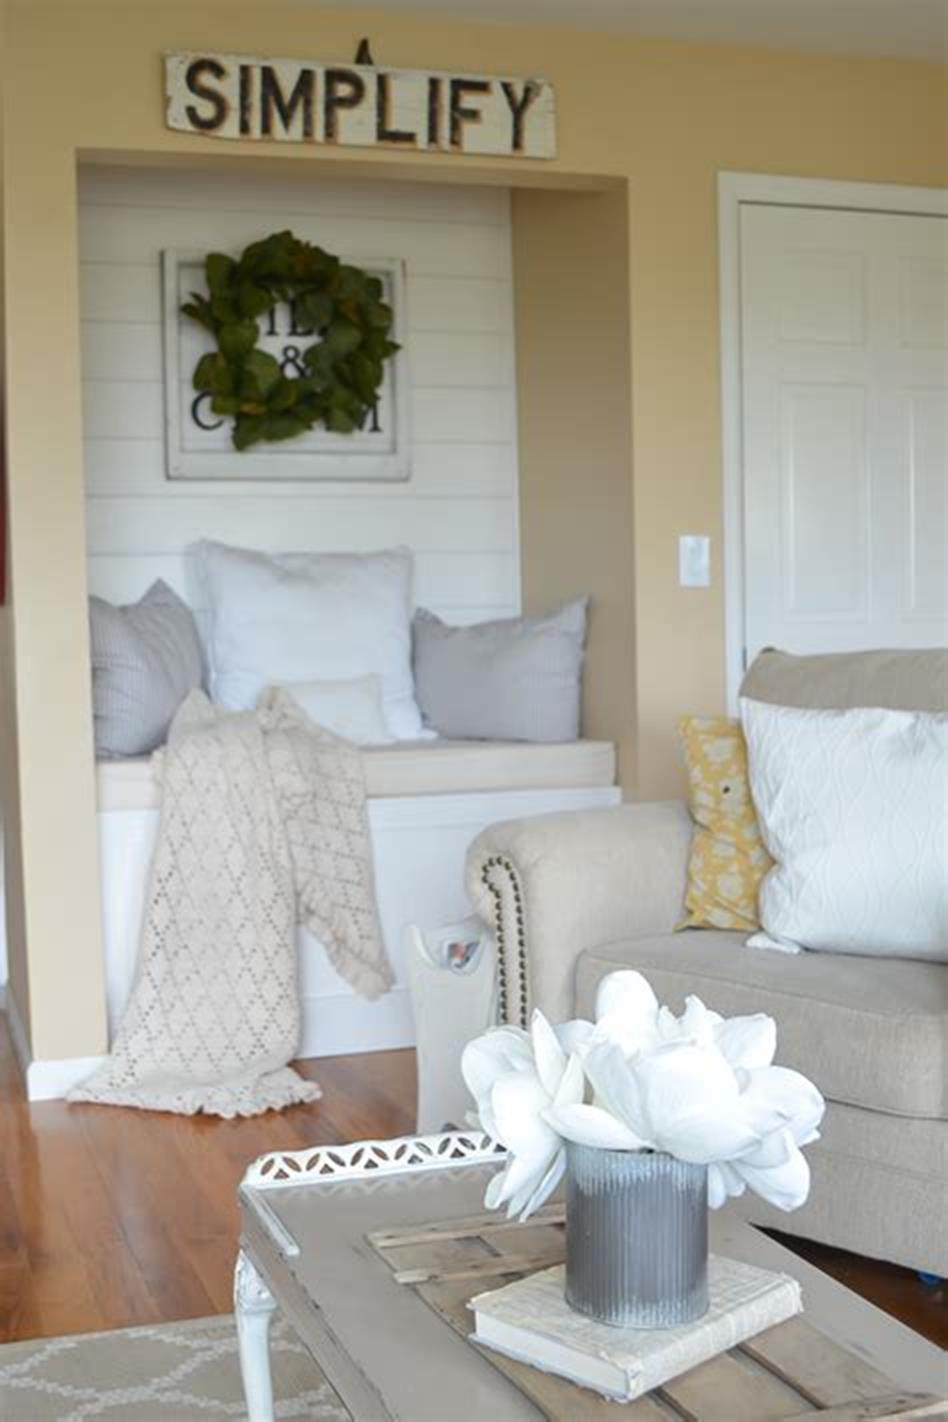 37 Beautiful Farmhouse Spring Decorating Ideas On a Budget for 2019 48